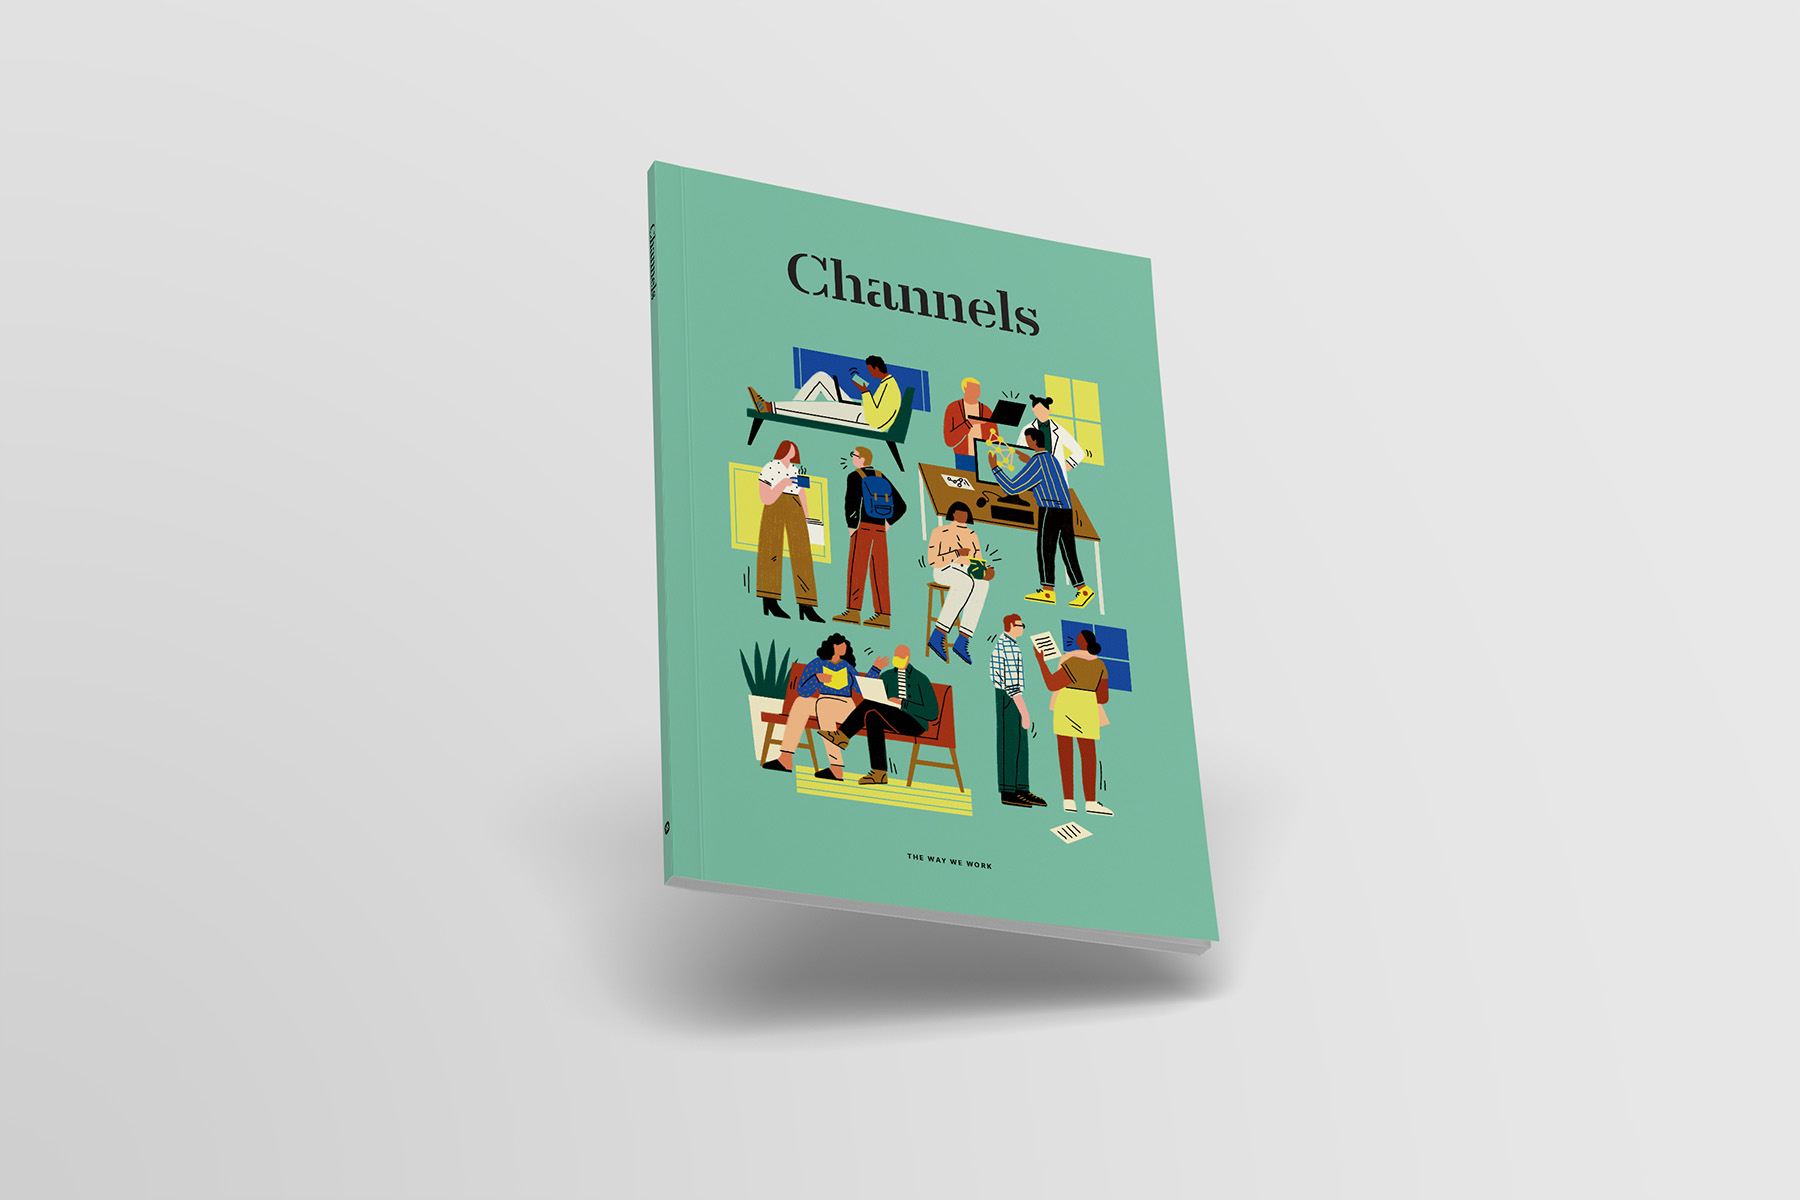 Slack+Channels+magazine+cover+design